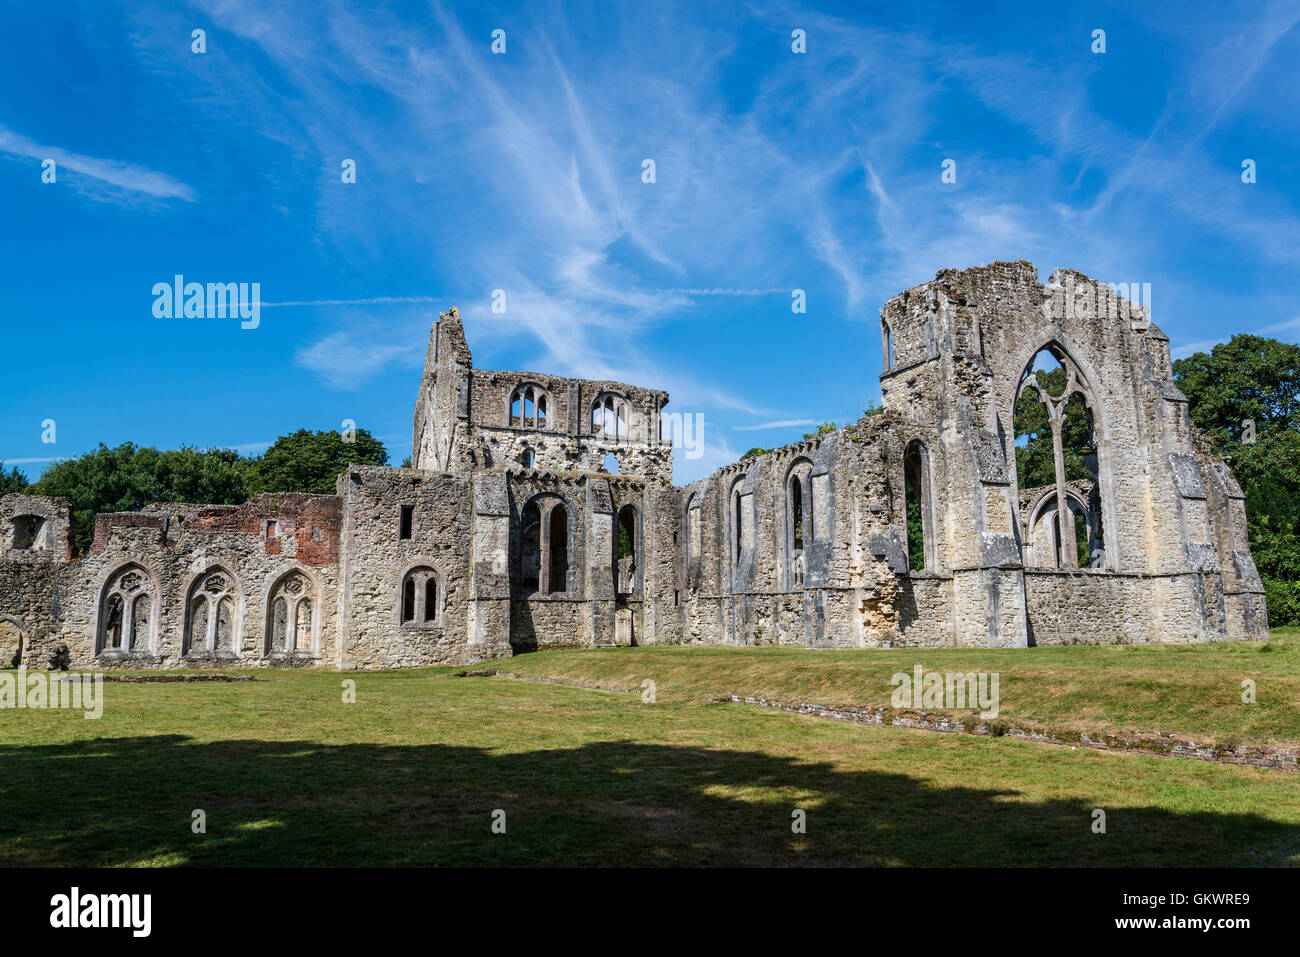 Netley Abbey, a ruined 13th century medieval monastery, near Southampton, Hampshire, England, UK - Stock Image